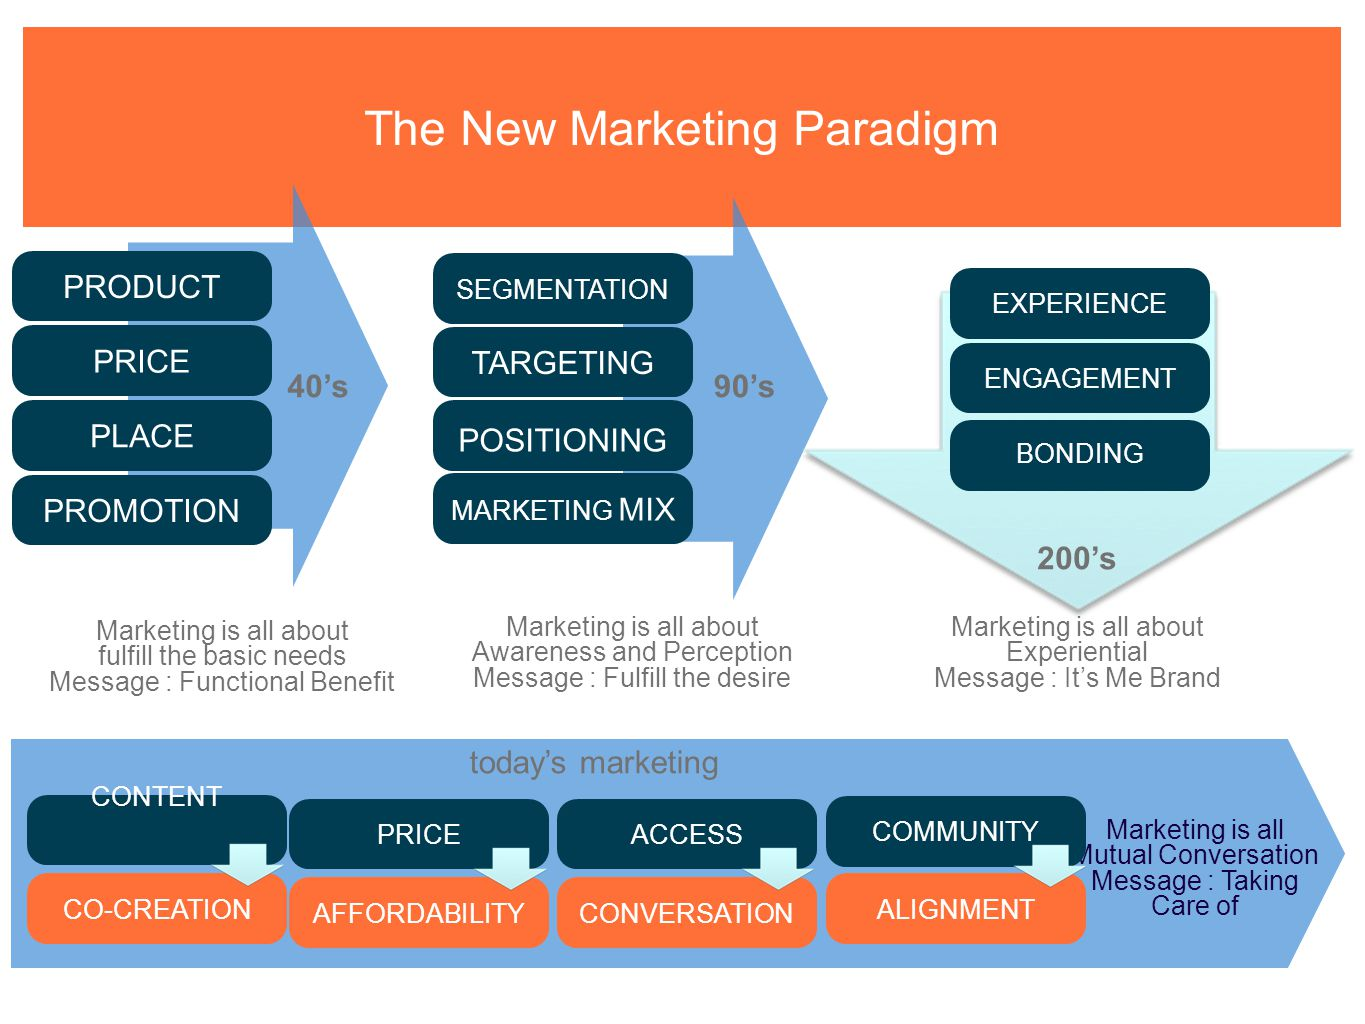 The New Marketing Paradigm SEGMENTATION TARGETING POSITIONING MARKETING MIX 90's Marketing is all about Awareness and Perception Message : Fulfill the desire EXPERIENCE ENGAGEMENT BONDING 200's Marketing is all about Experiential Message : It's Me Brand today's marketing CONVERSATION ACCESS CONTENT ALIGNMENT Marketing is all Mutual Conversation Message : Taking Care of COMMUNITY CO-CREATION AFFORDABILITY PRICE PRODUCT PRICE Marketing is all about fulfill the basic needs Message : Functional Benefit 40's PLACE PROMOTION